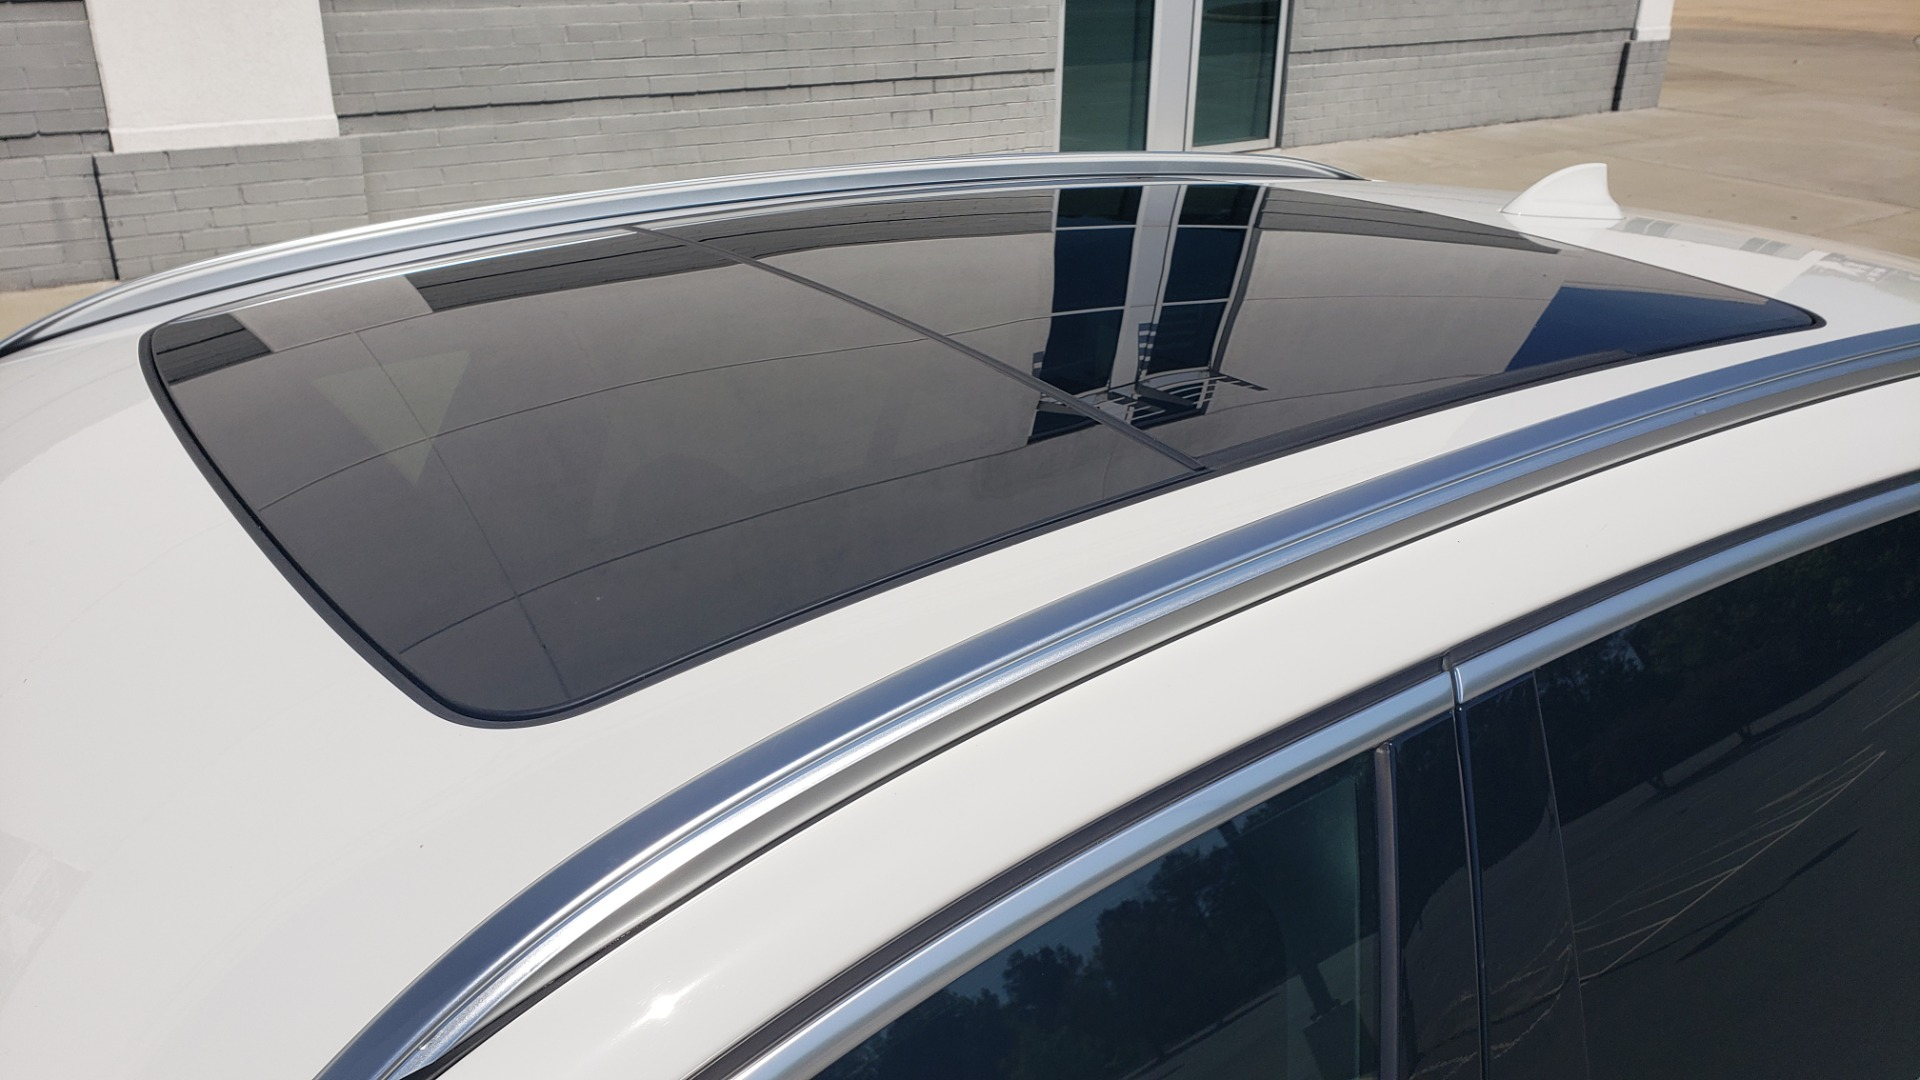 Used 2018 BMW X3 XDRIVE30I / CONV PKG / PANO-ROOF / HTD STS / REARVIEW for sale $33,995 at Formula Imports in Charlotte NC 28227 10